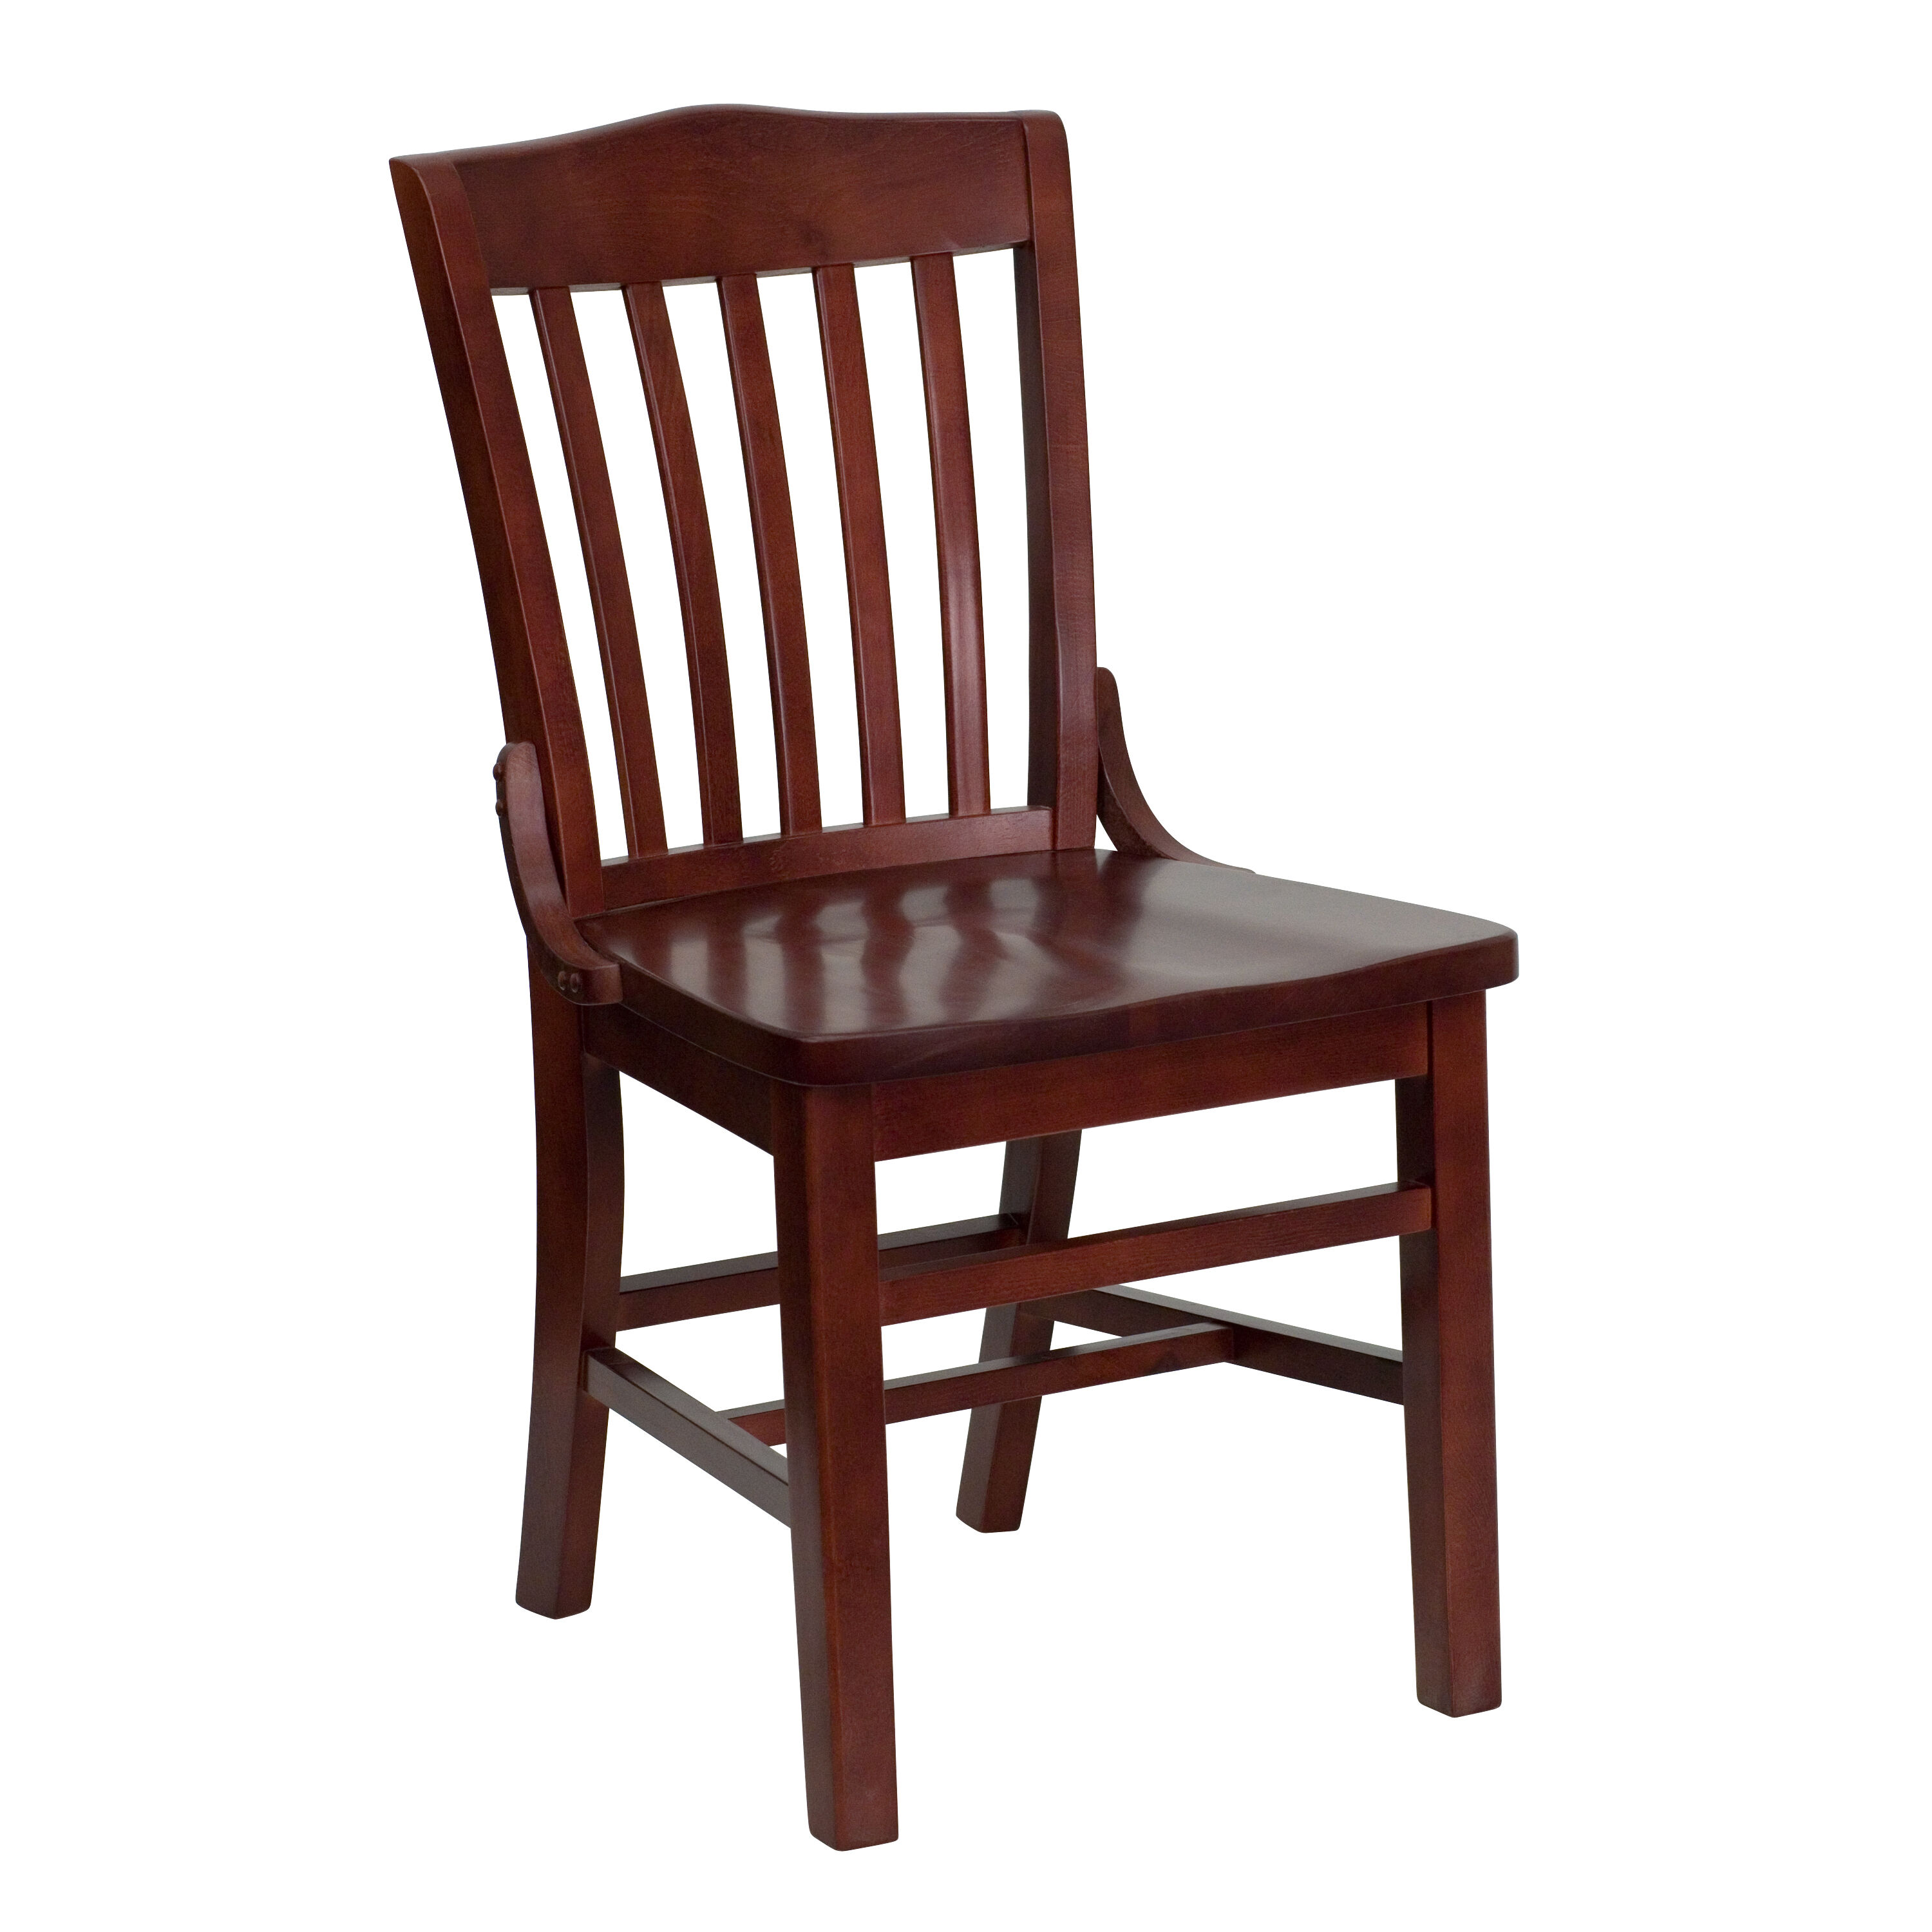 Restaurant Chairs For Sale Mahogany Wood Dining Chair Bfdh 7992mbk Tdr